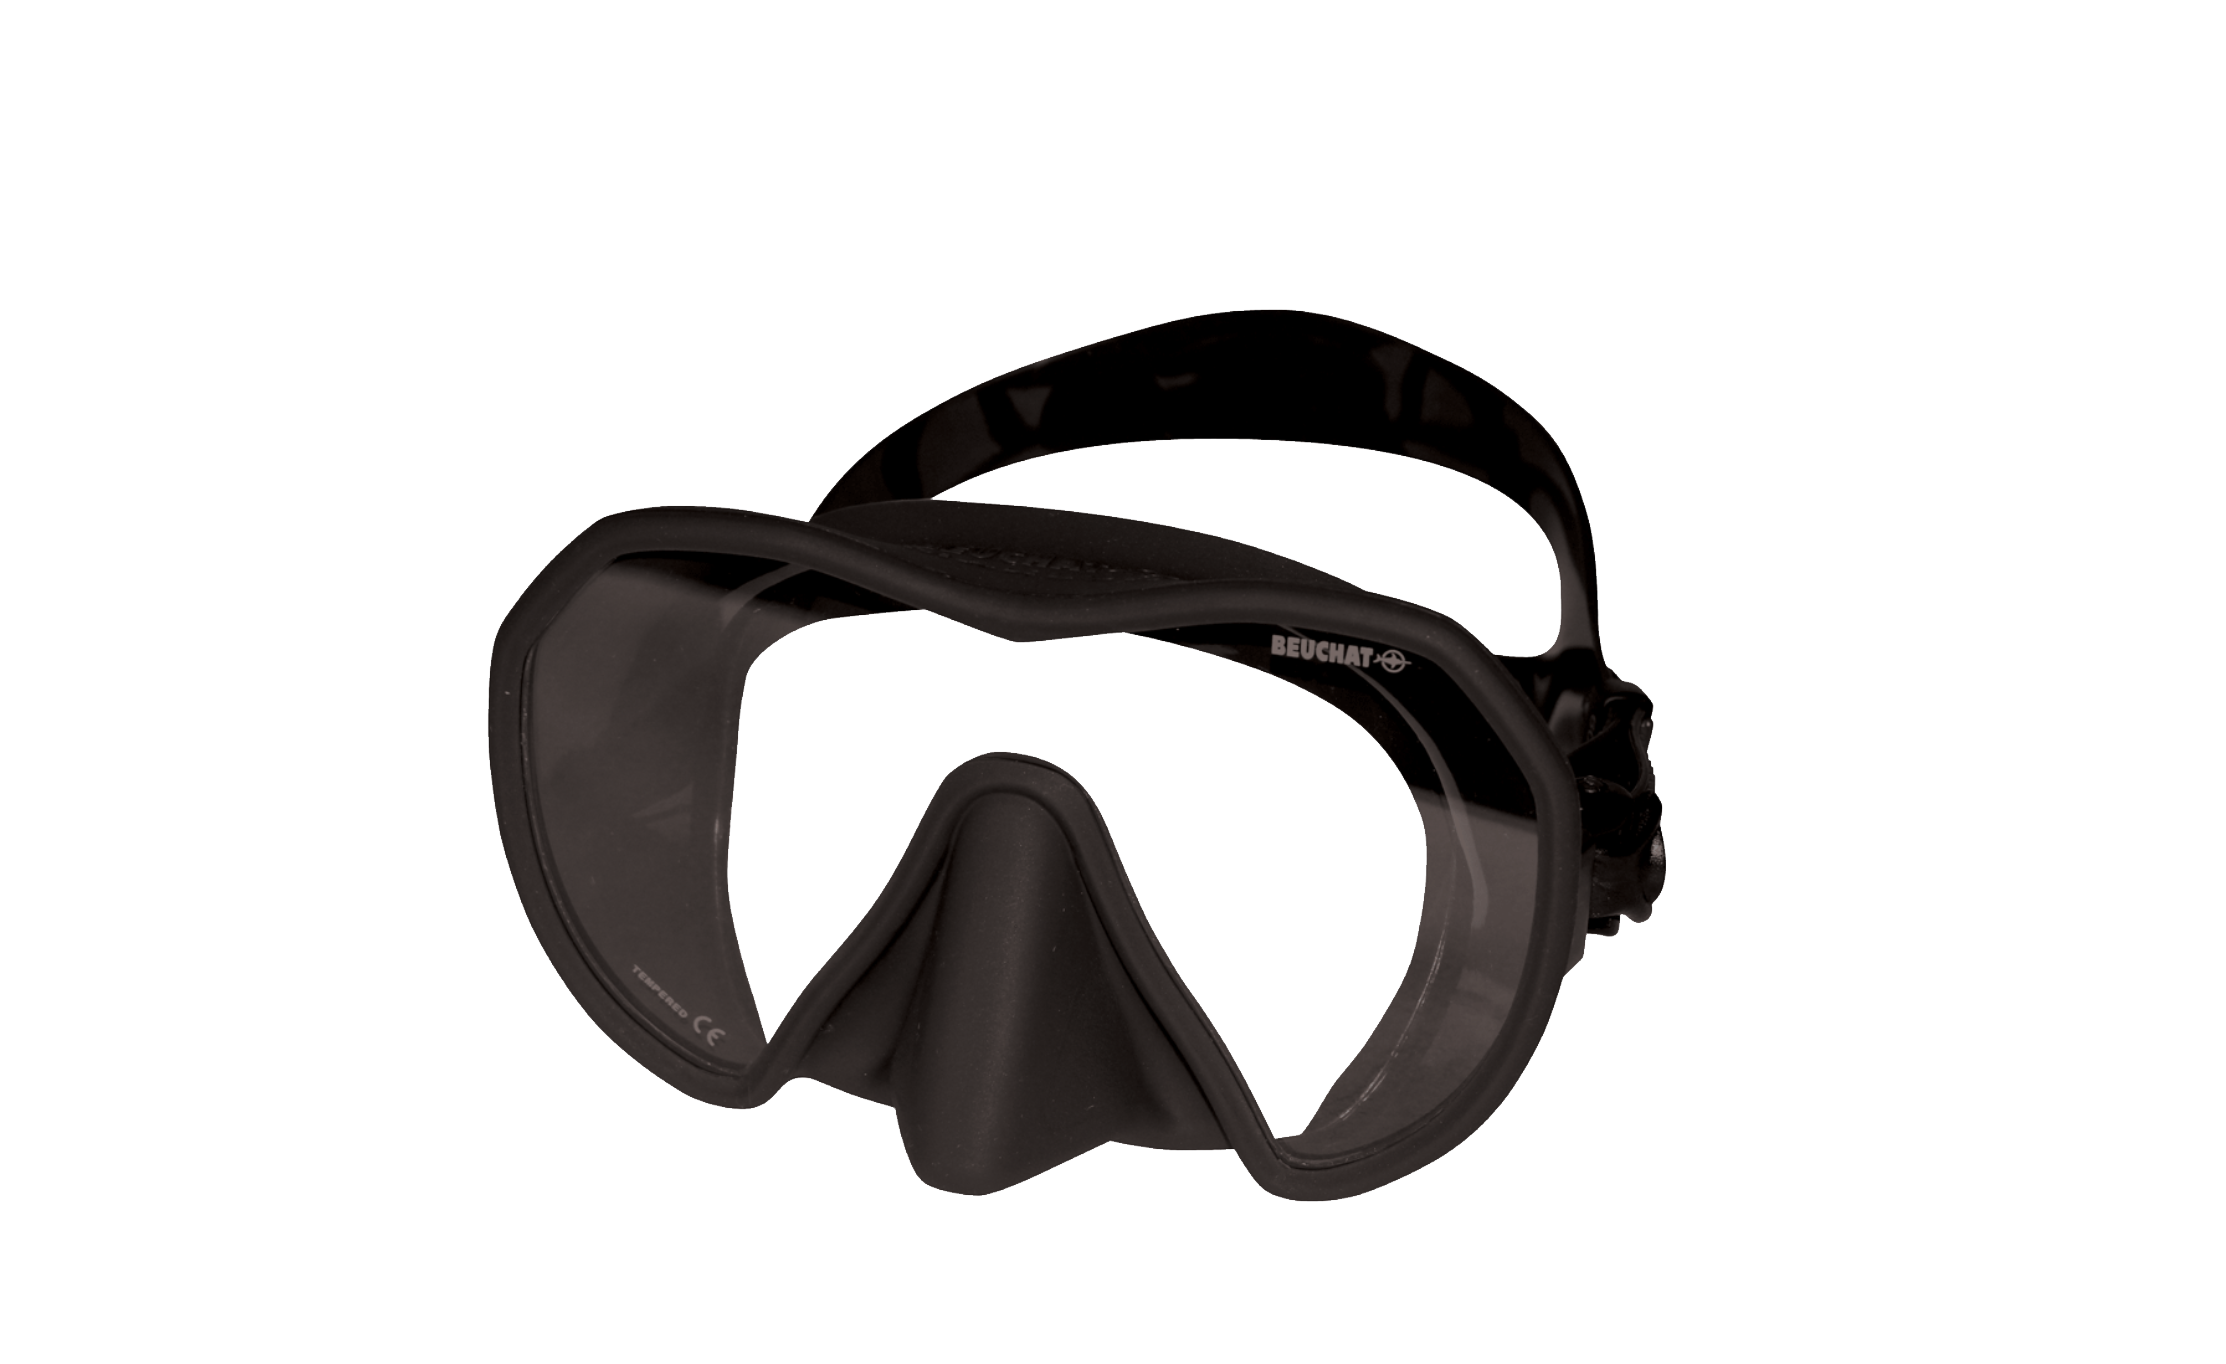 Snorkel, diving mask PNG